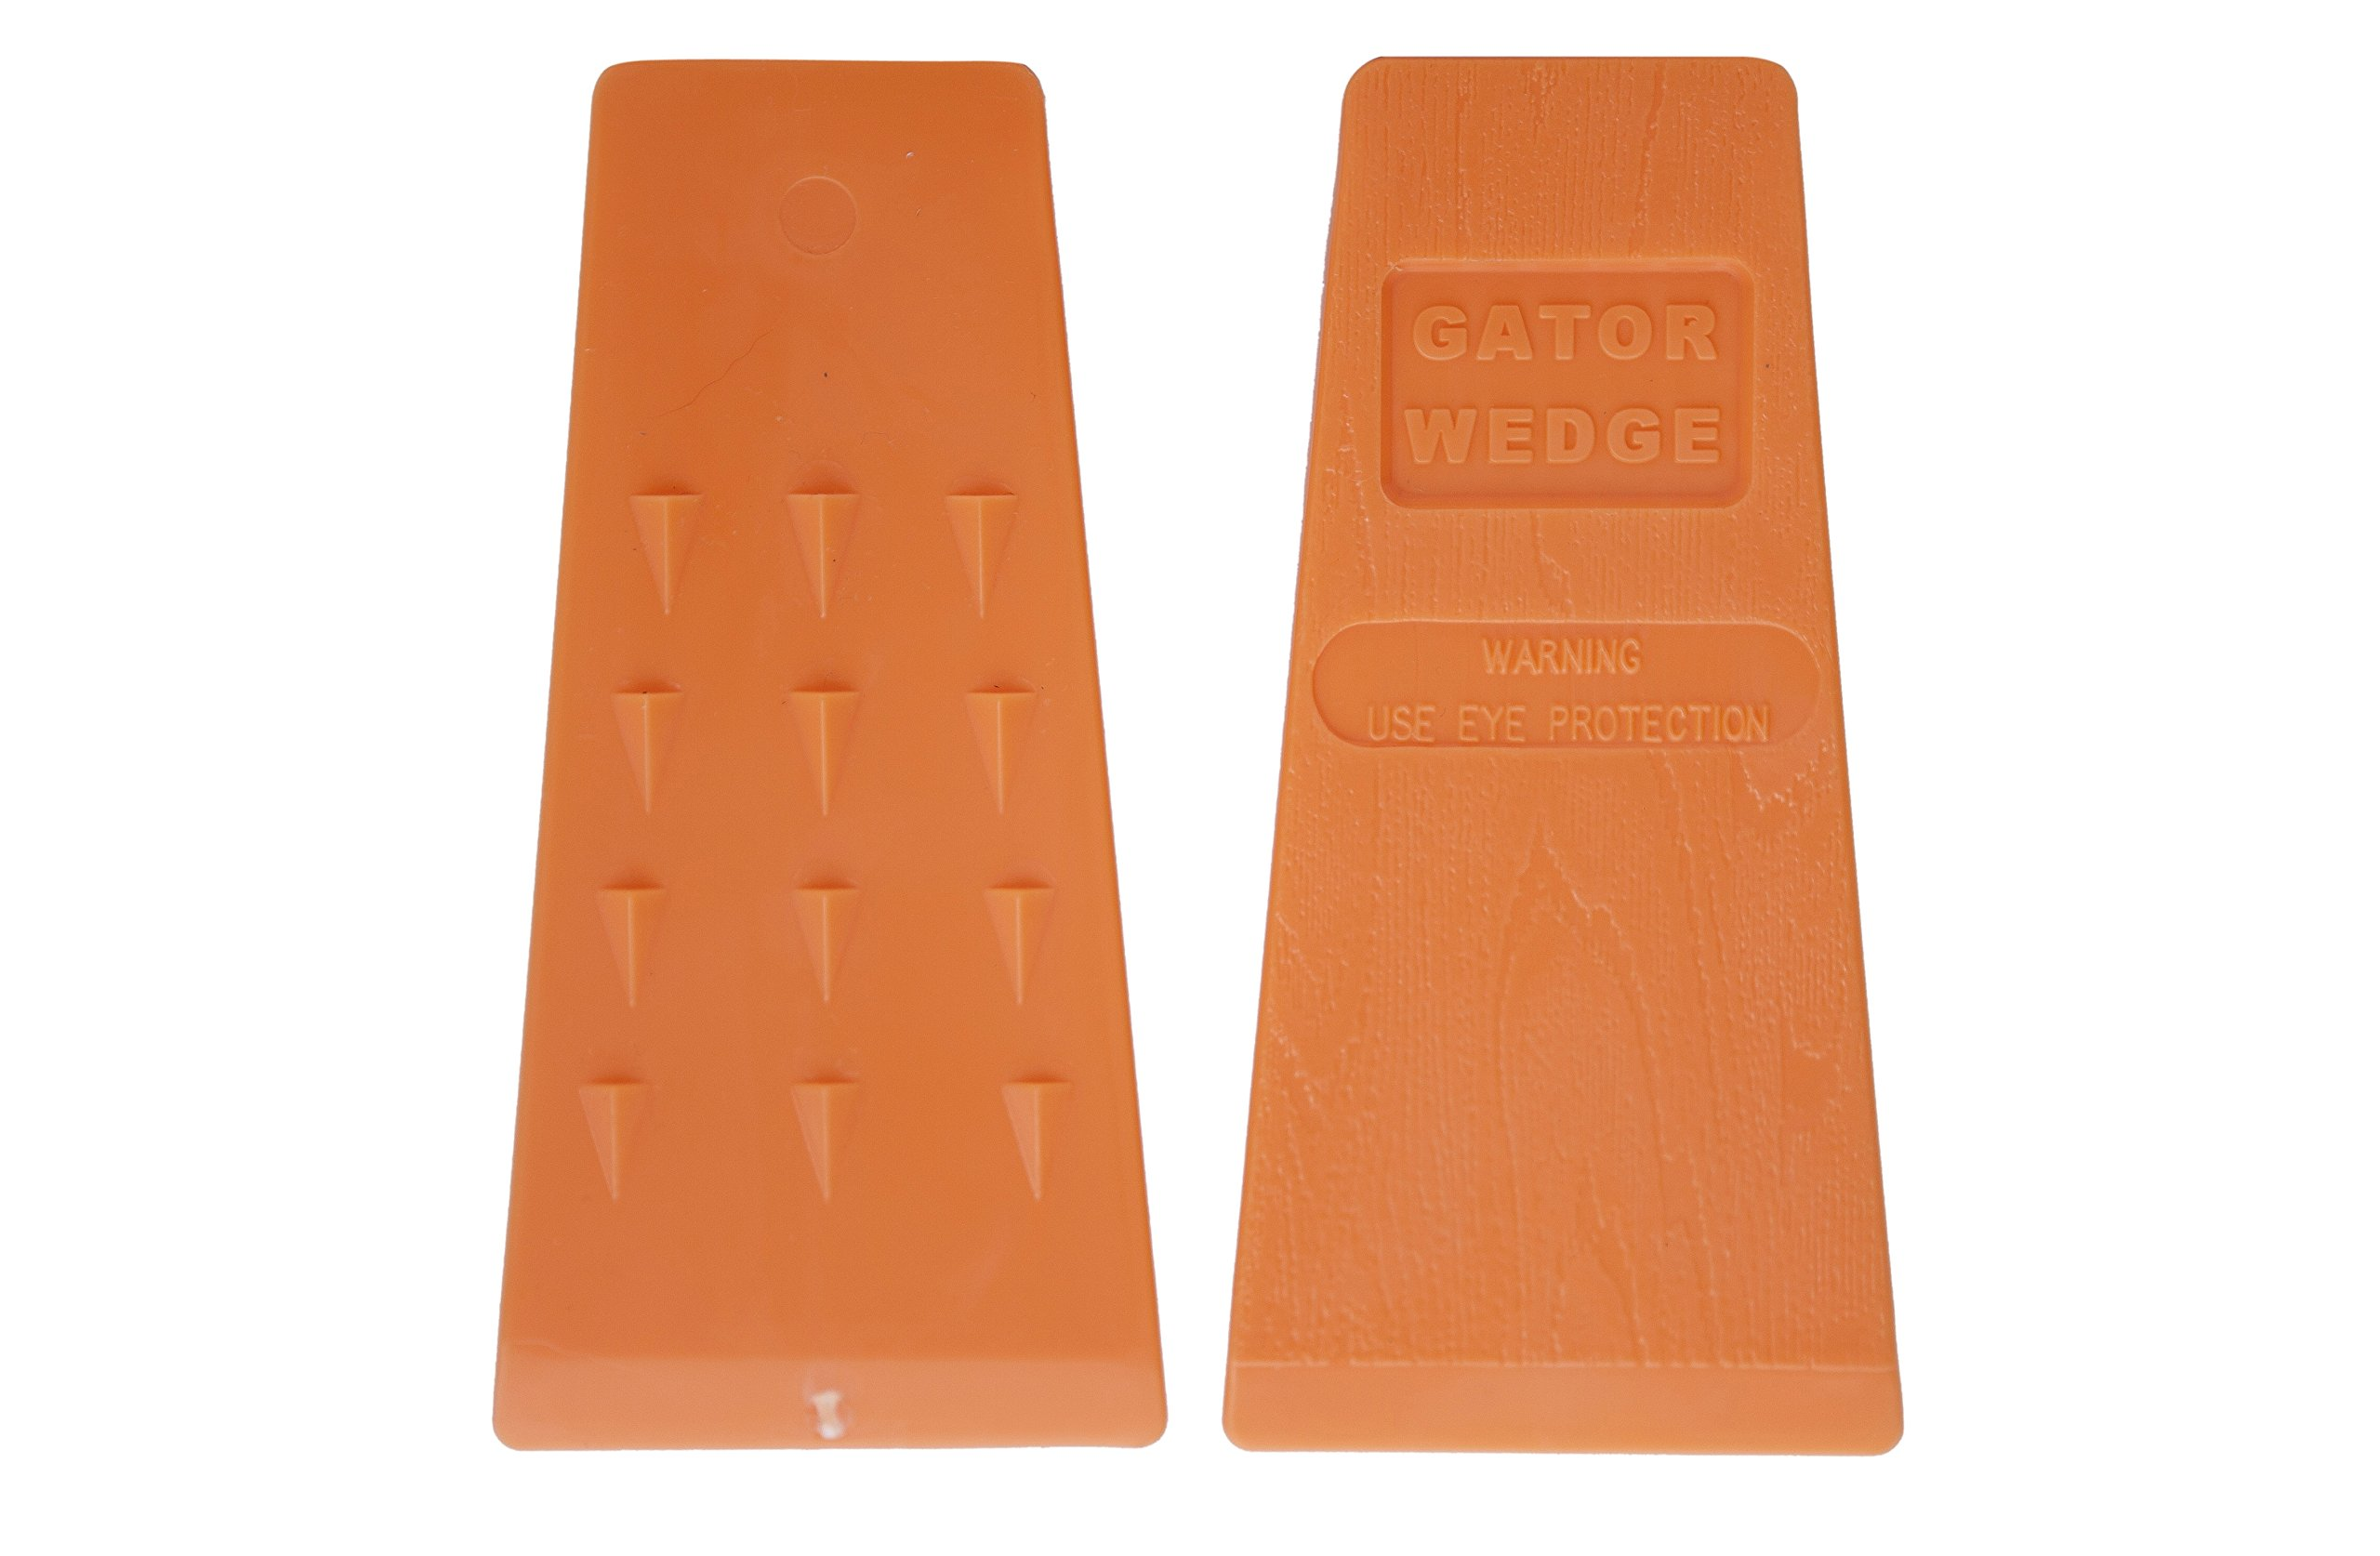 Gator Wedge USA Made 5.5 Inches Felling Wedges Logging Supplies for Chain Saw, 2 Pack by Gator Wedge